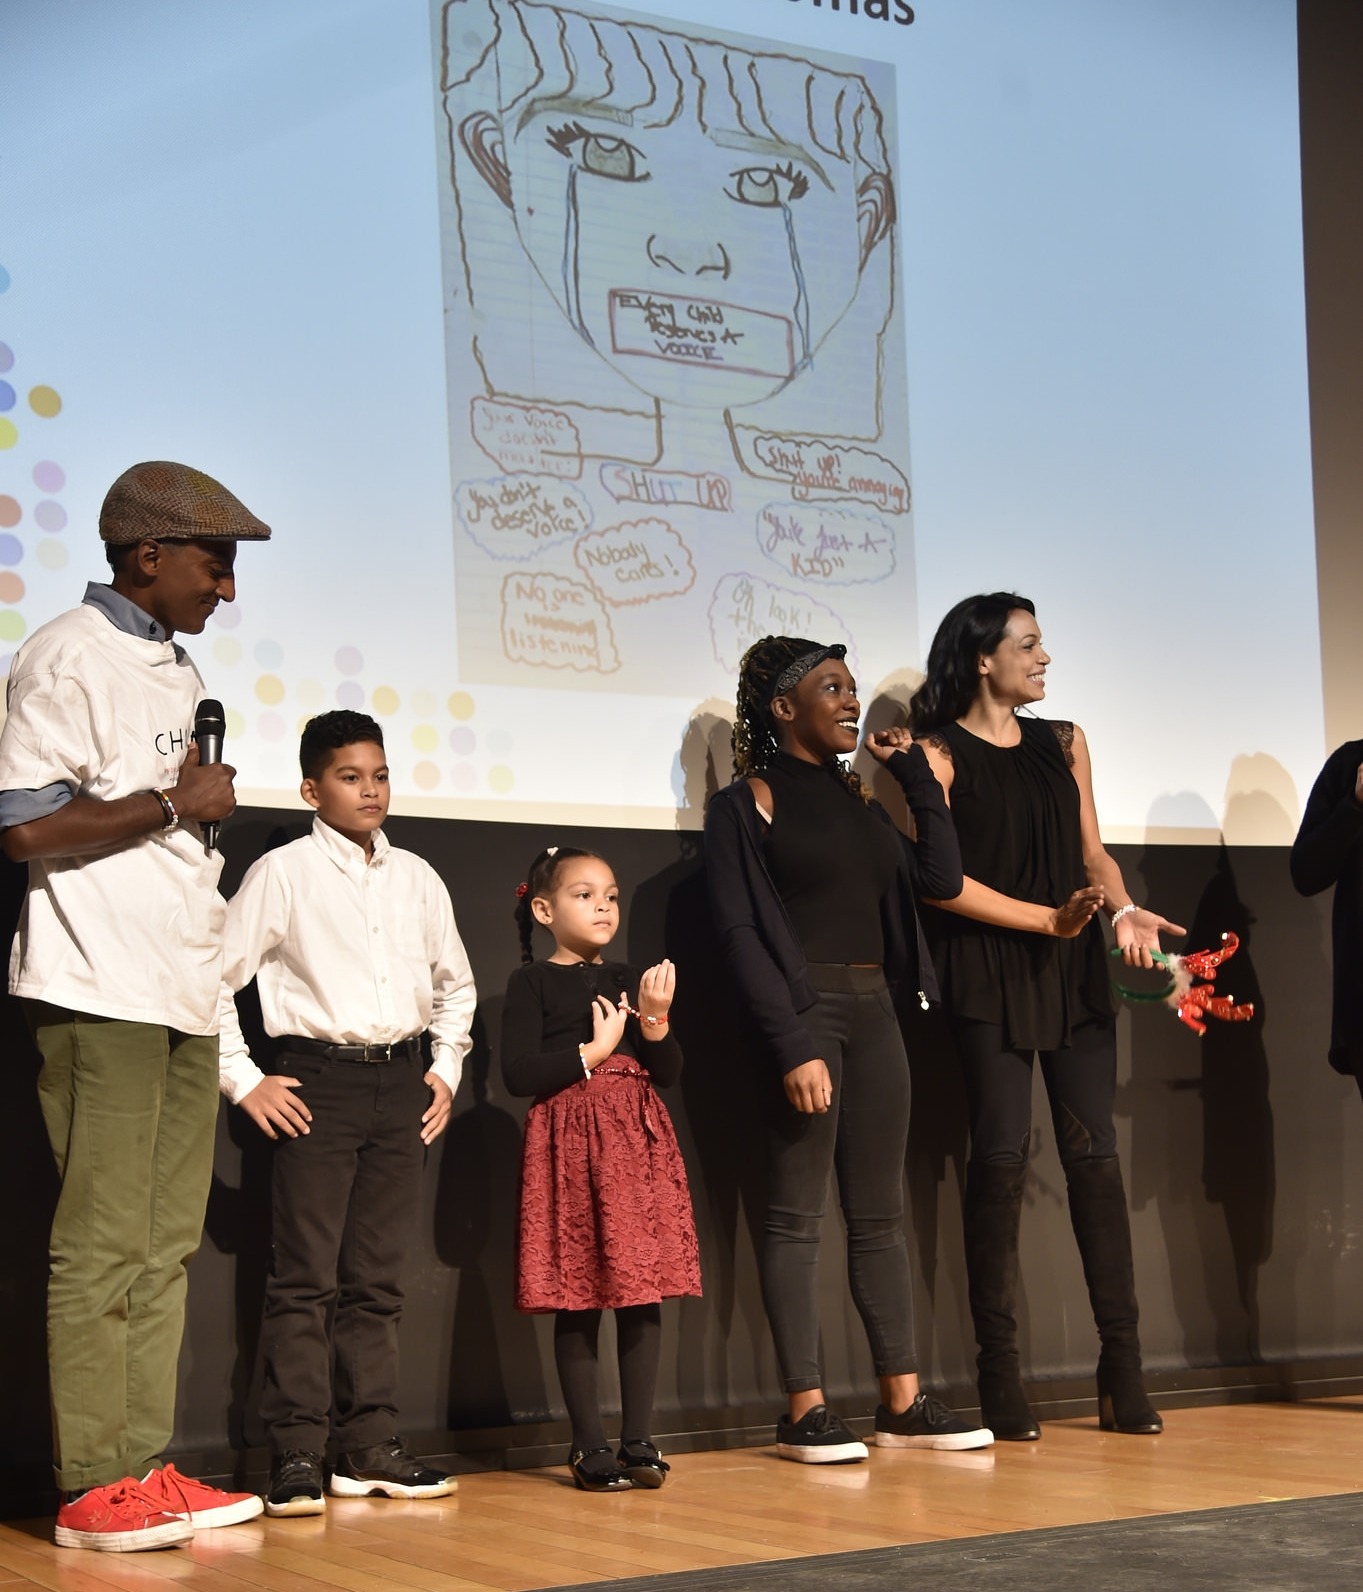 ThankYou Young Artist Award winners with chef Marcus Samuelsson (L) and actress Rosario Dawson (R)